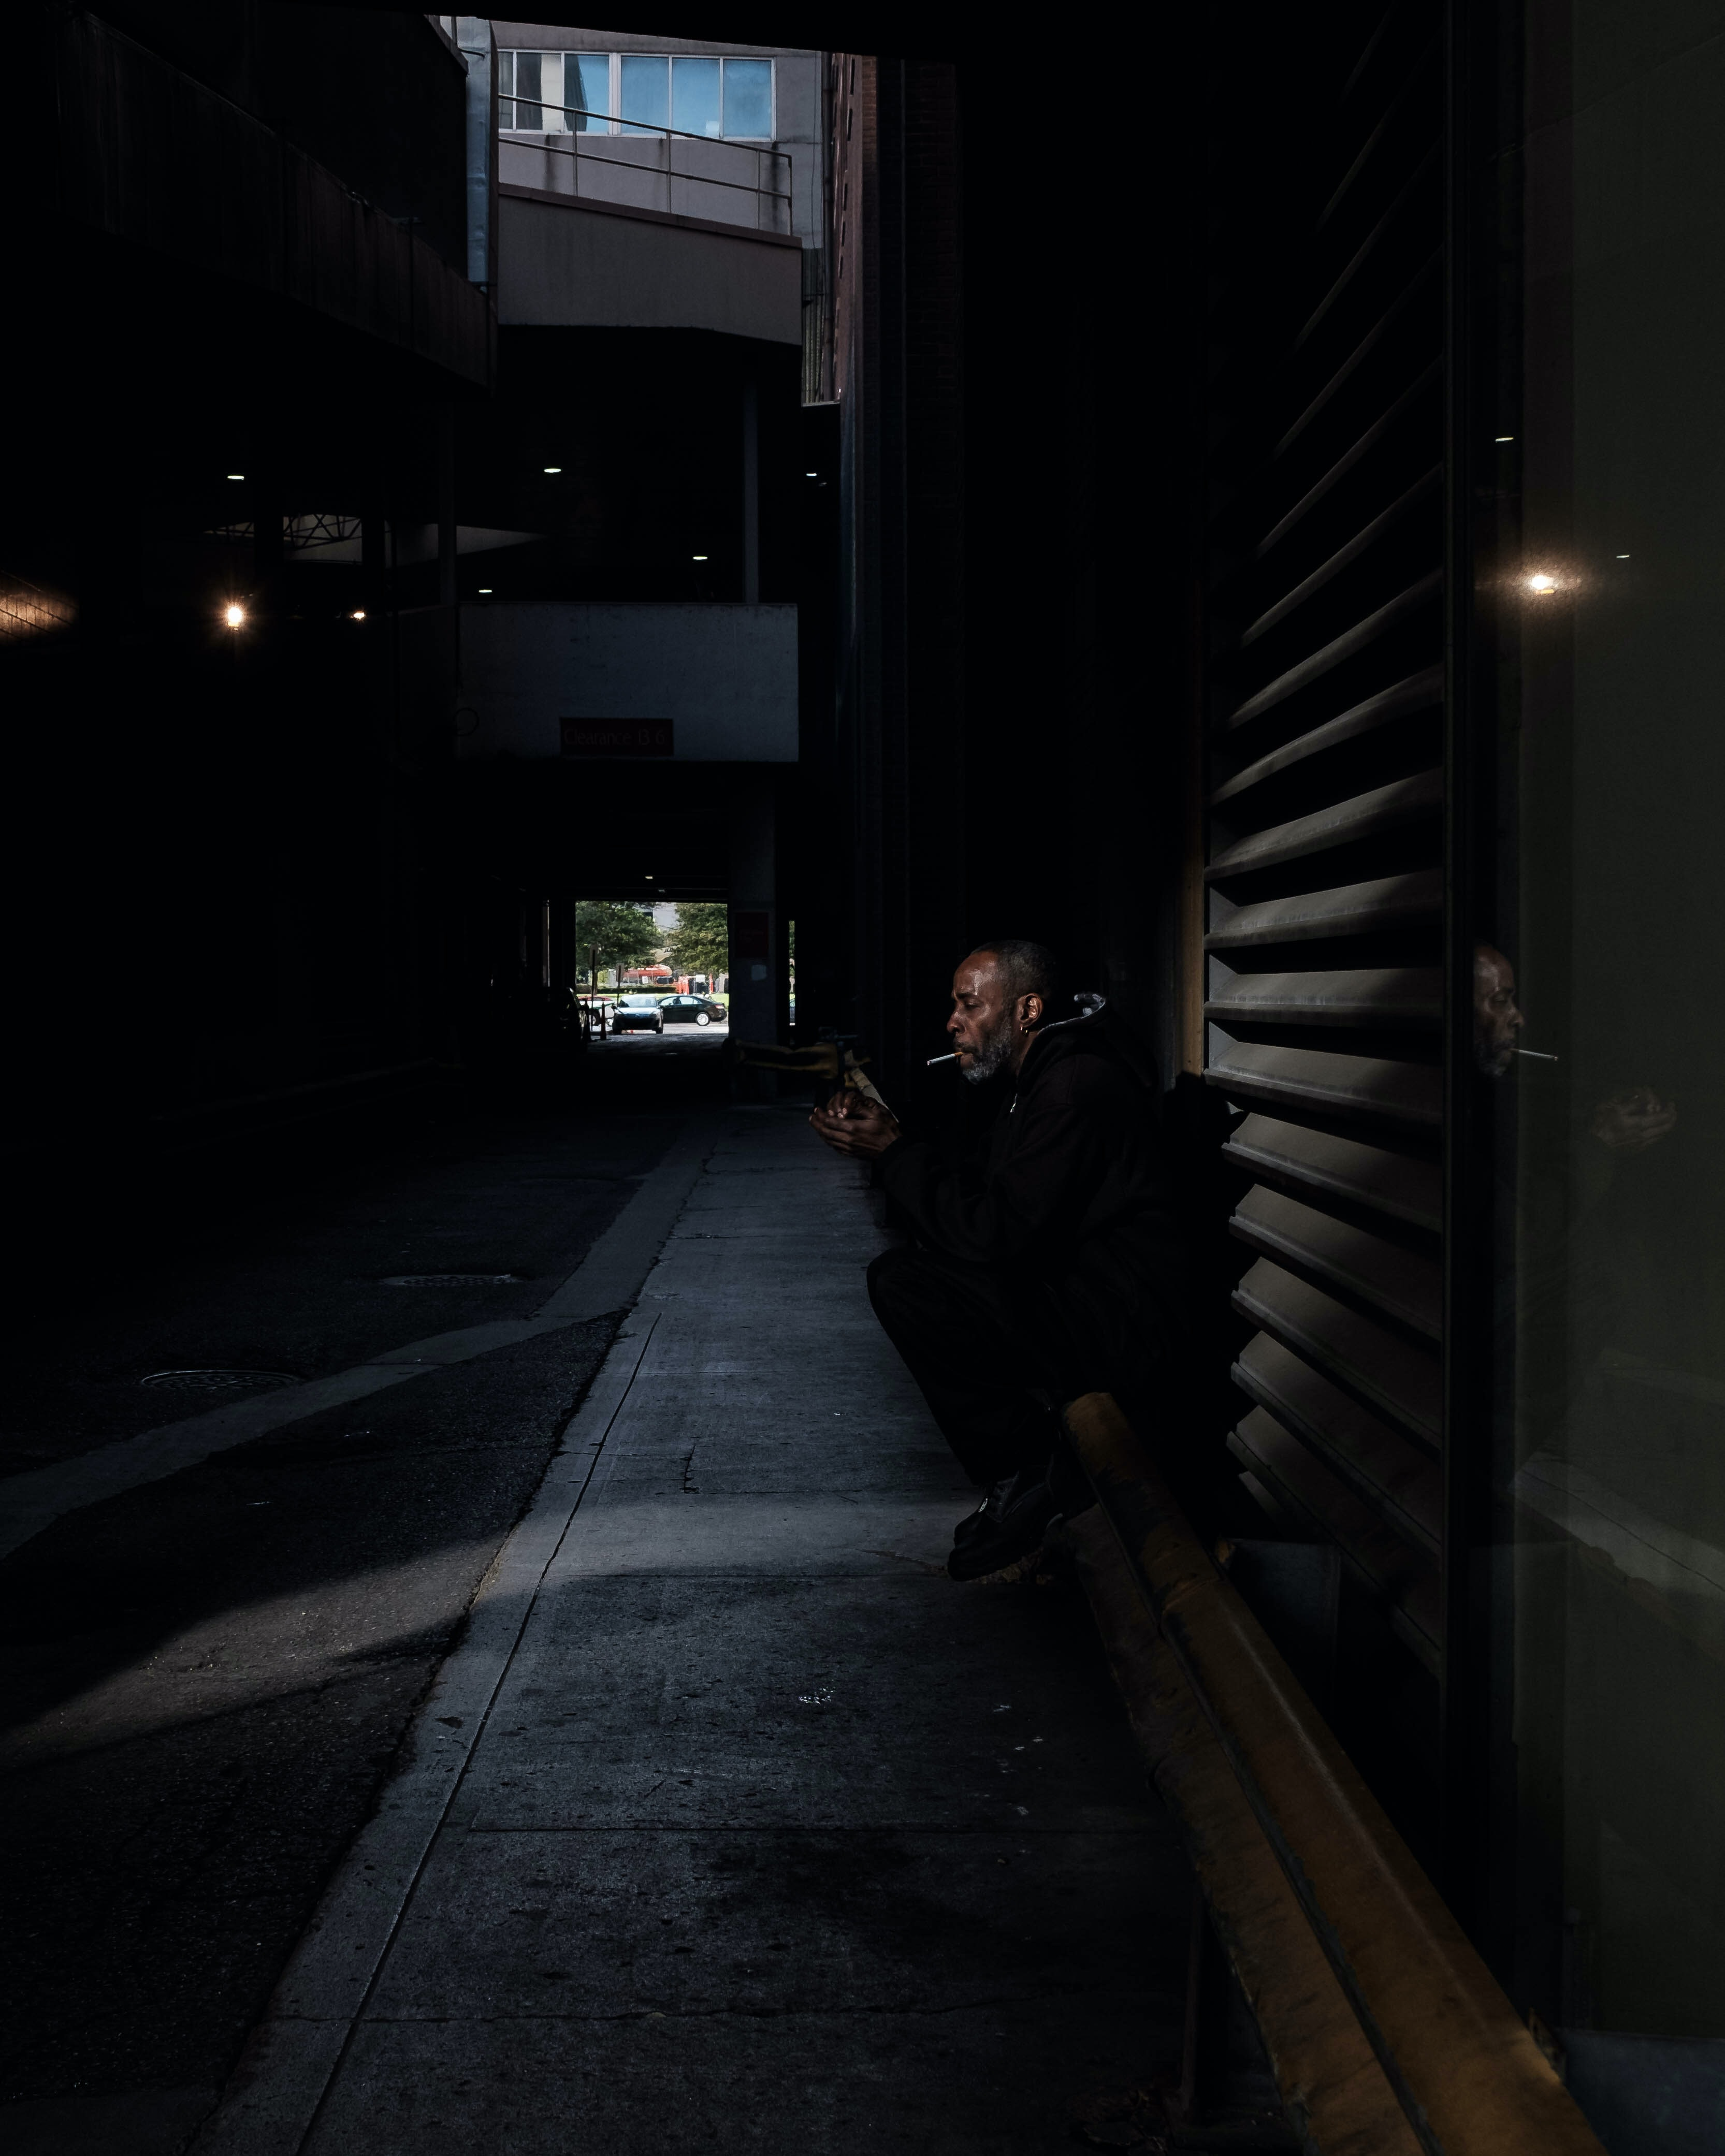 person sitting next to wall